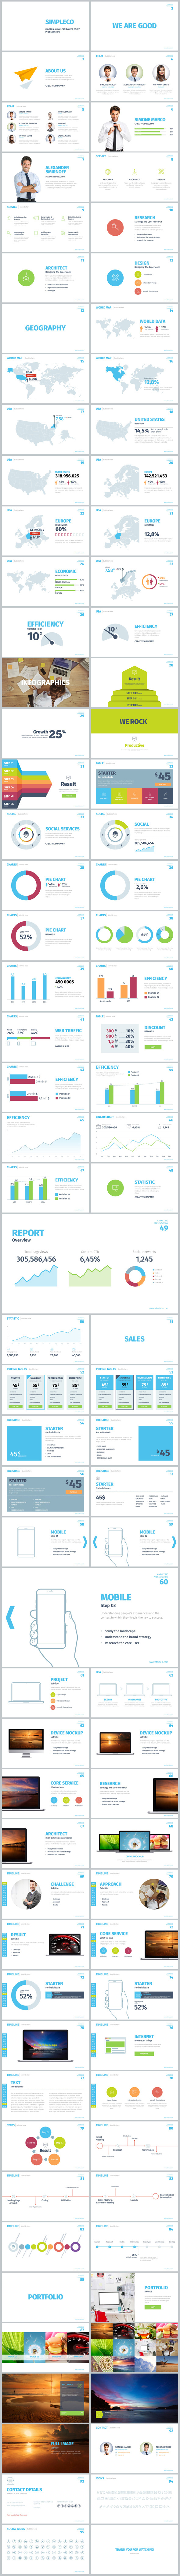 Simpleco: Minimalistic Business Powerpoint Template - 3